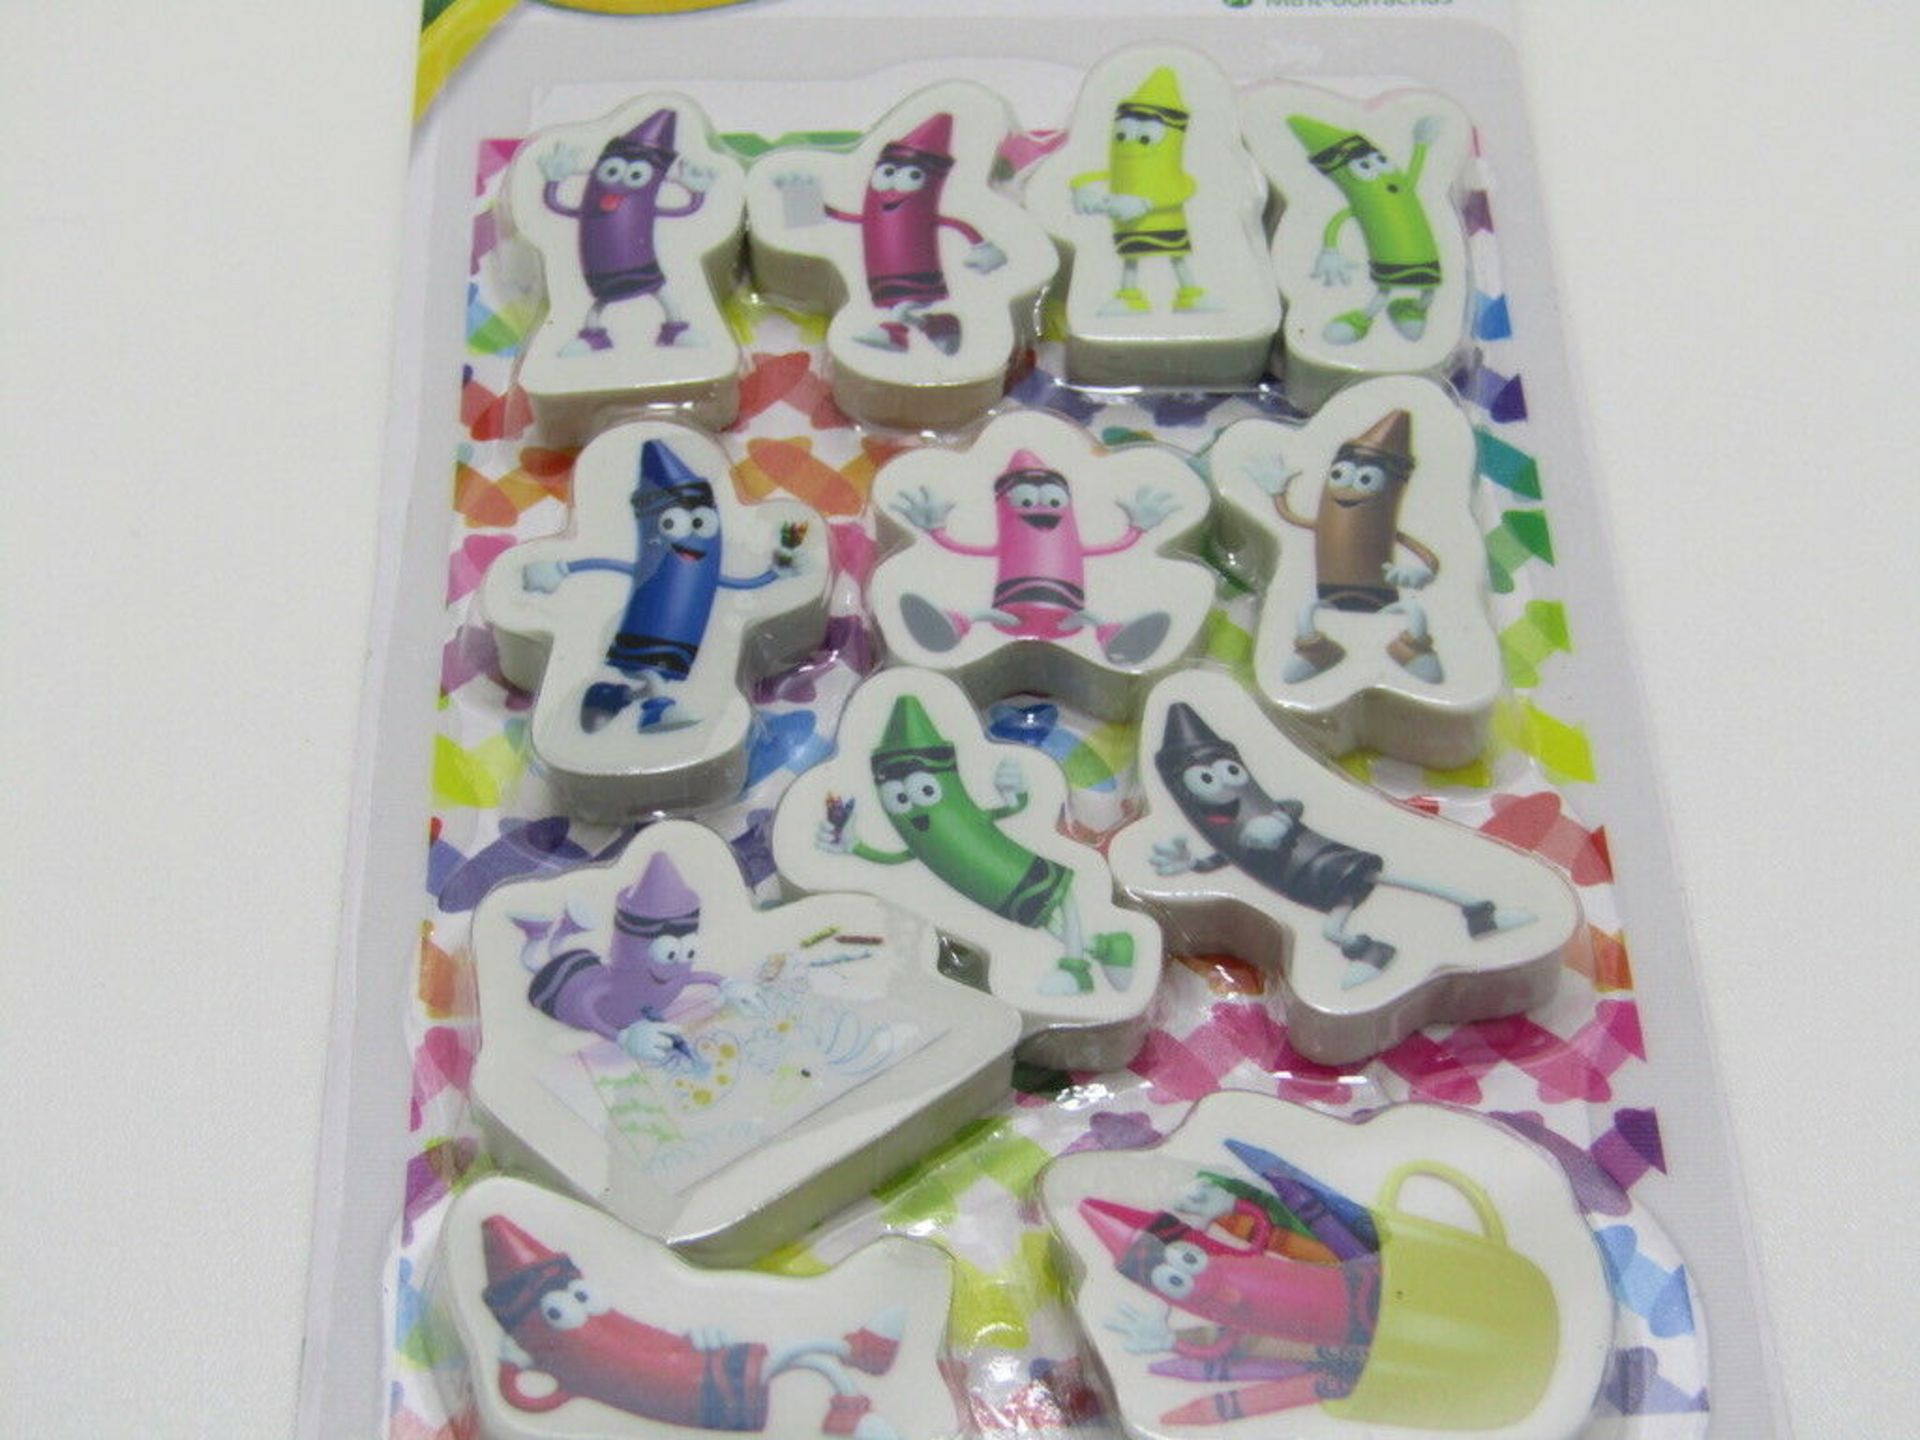 Lot 70 - 20 x CRAYOLA pack of 12 Mini Erasers. no vat on hammer.You will get 20 packs of 12 erasers.Crayola